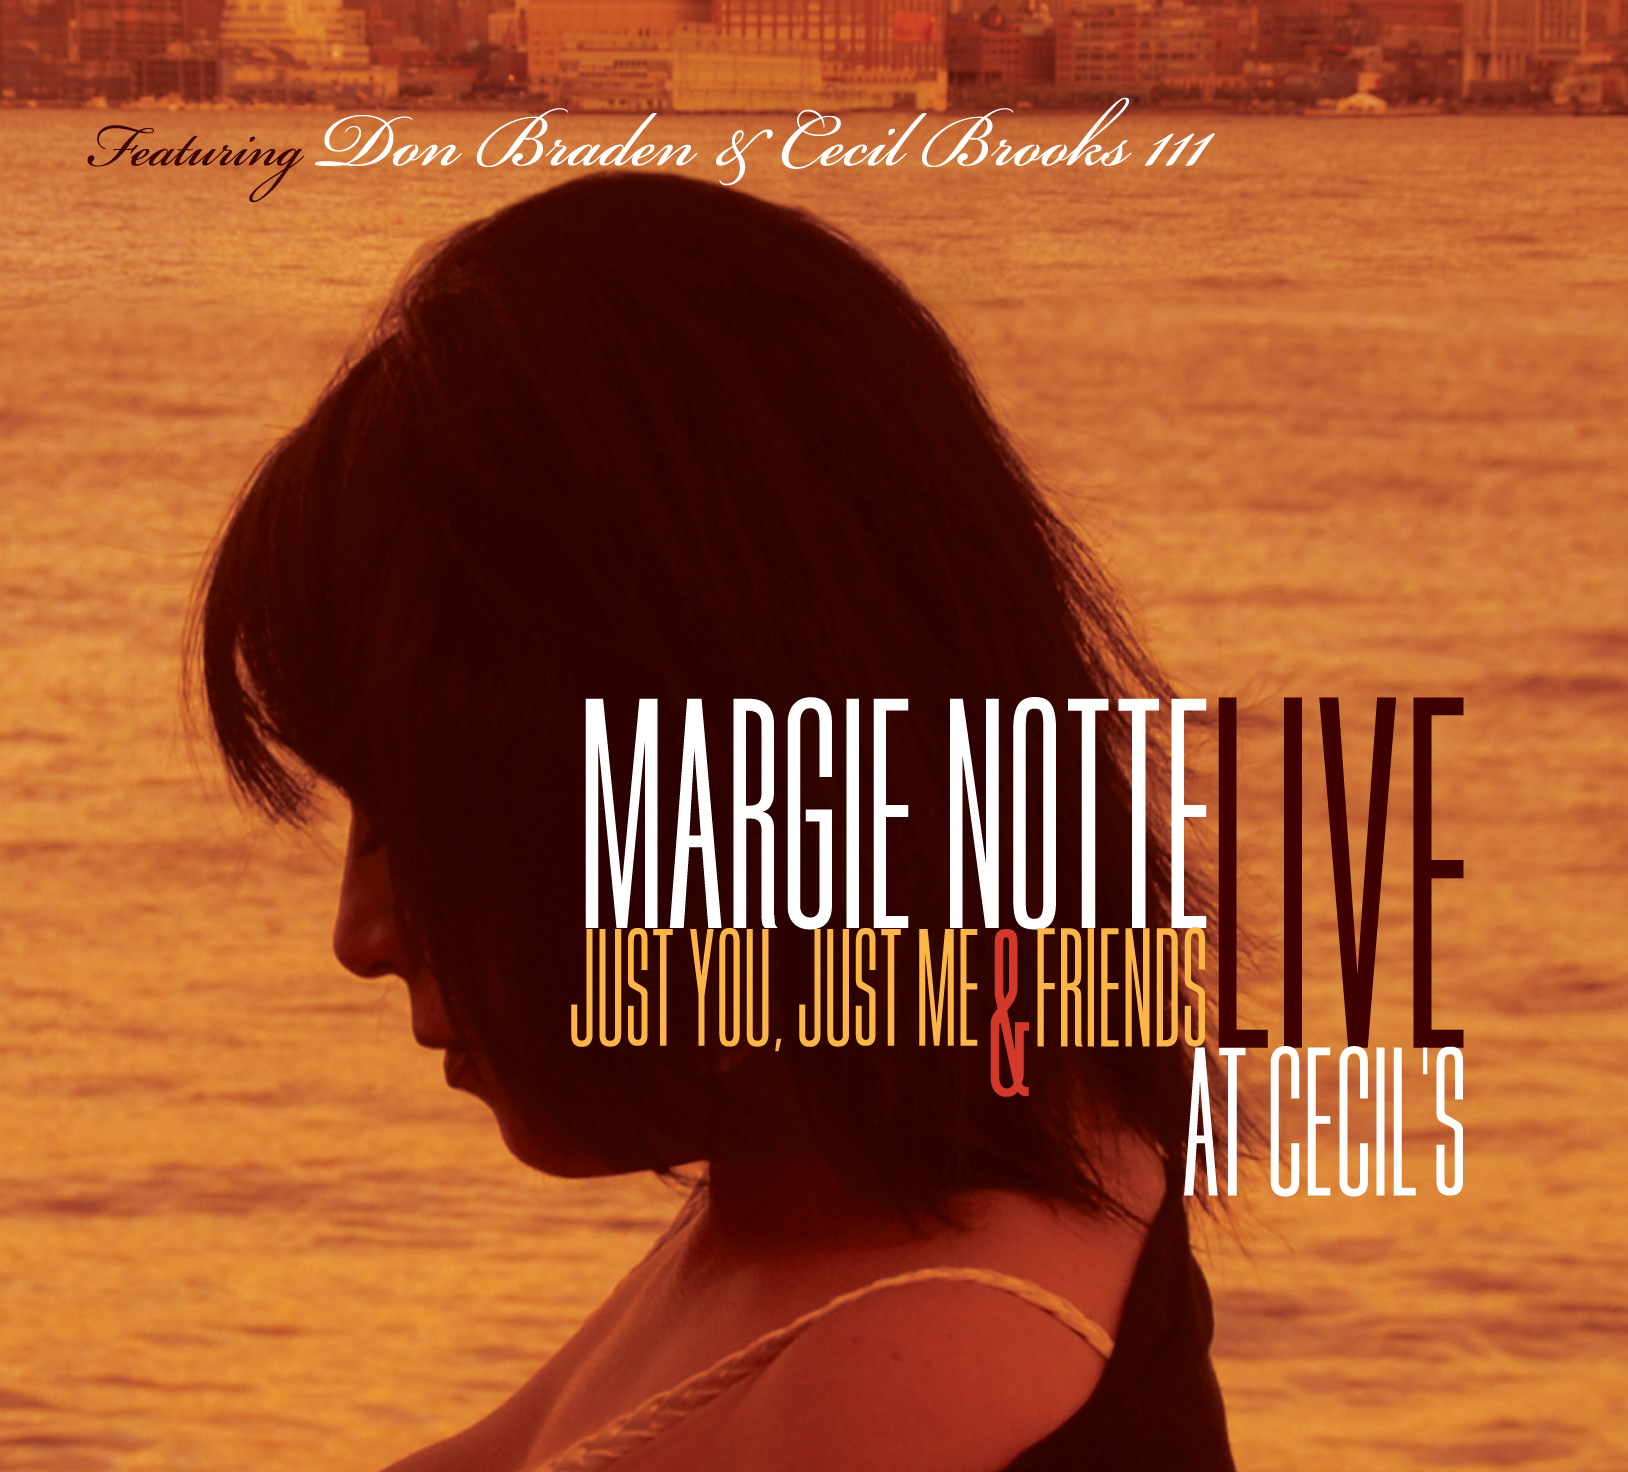 Margie Notte Just You, Just Me & Friends - Live at Cecil's